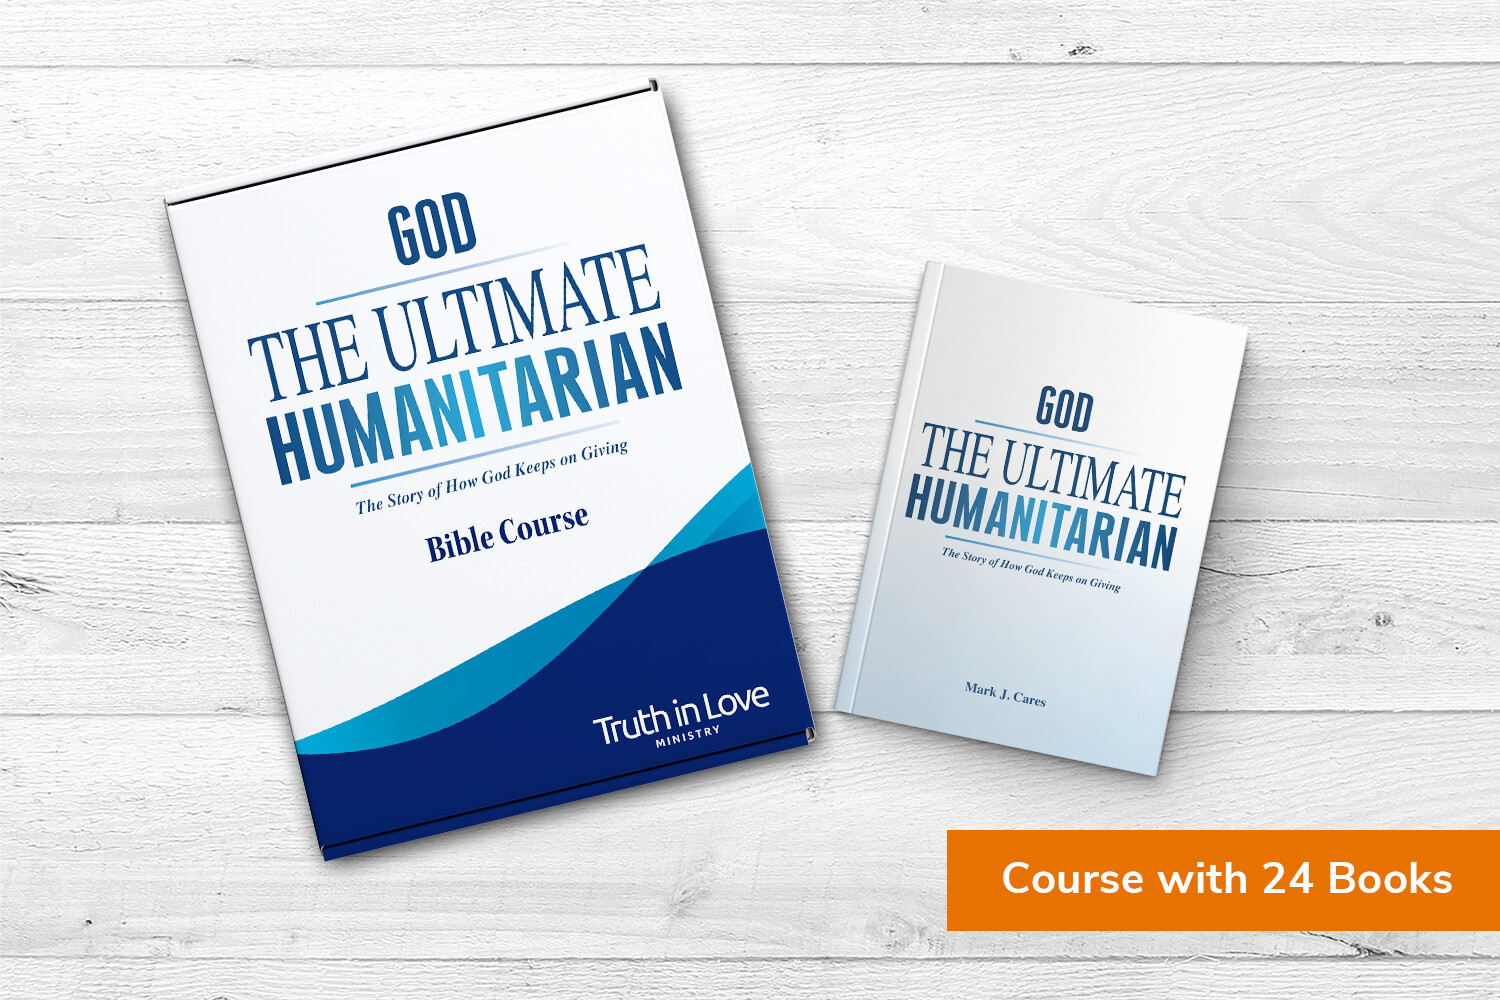 Package #1- God - The Ultimate Humanitarian Bible Course